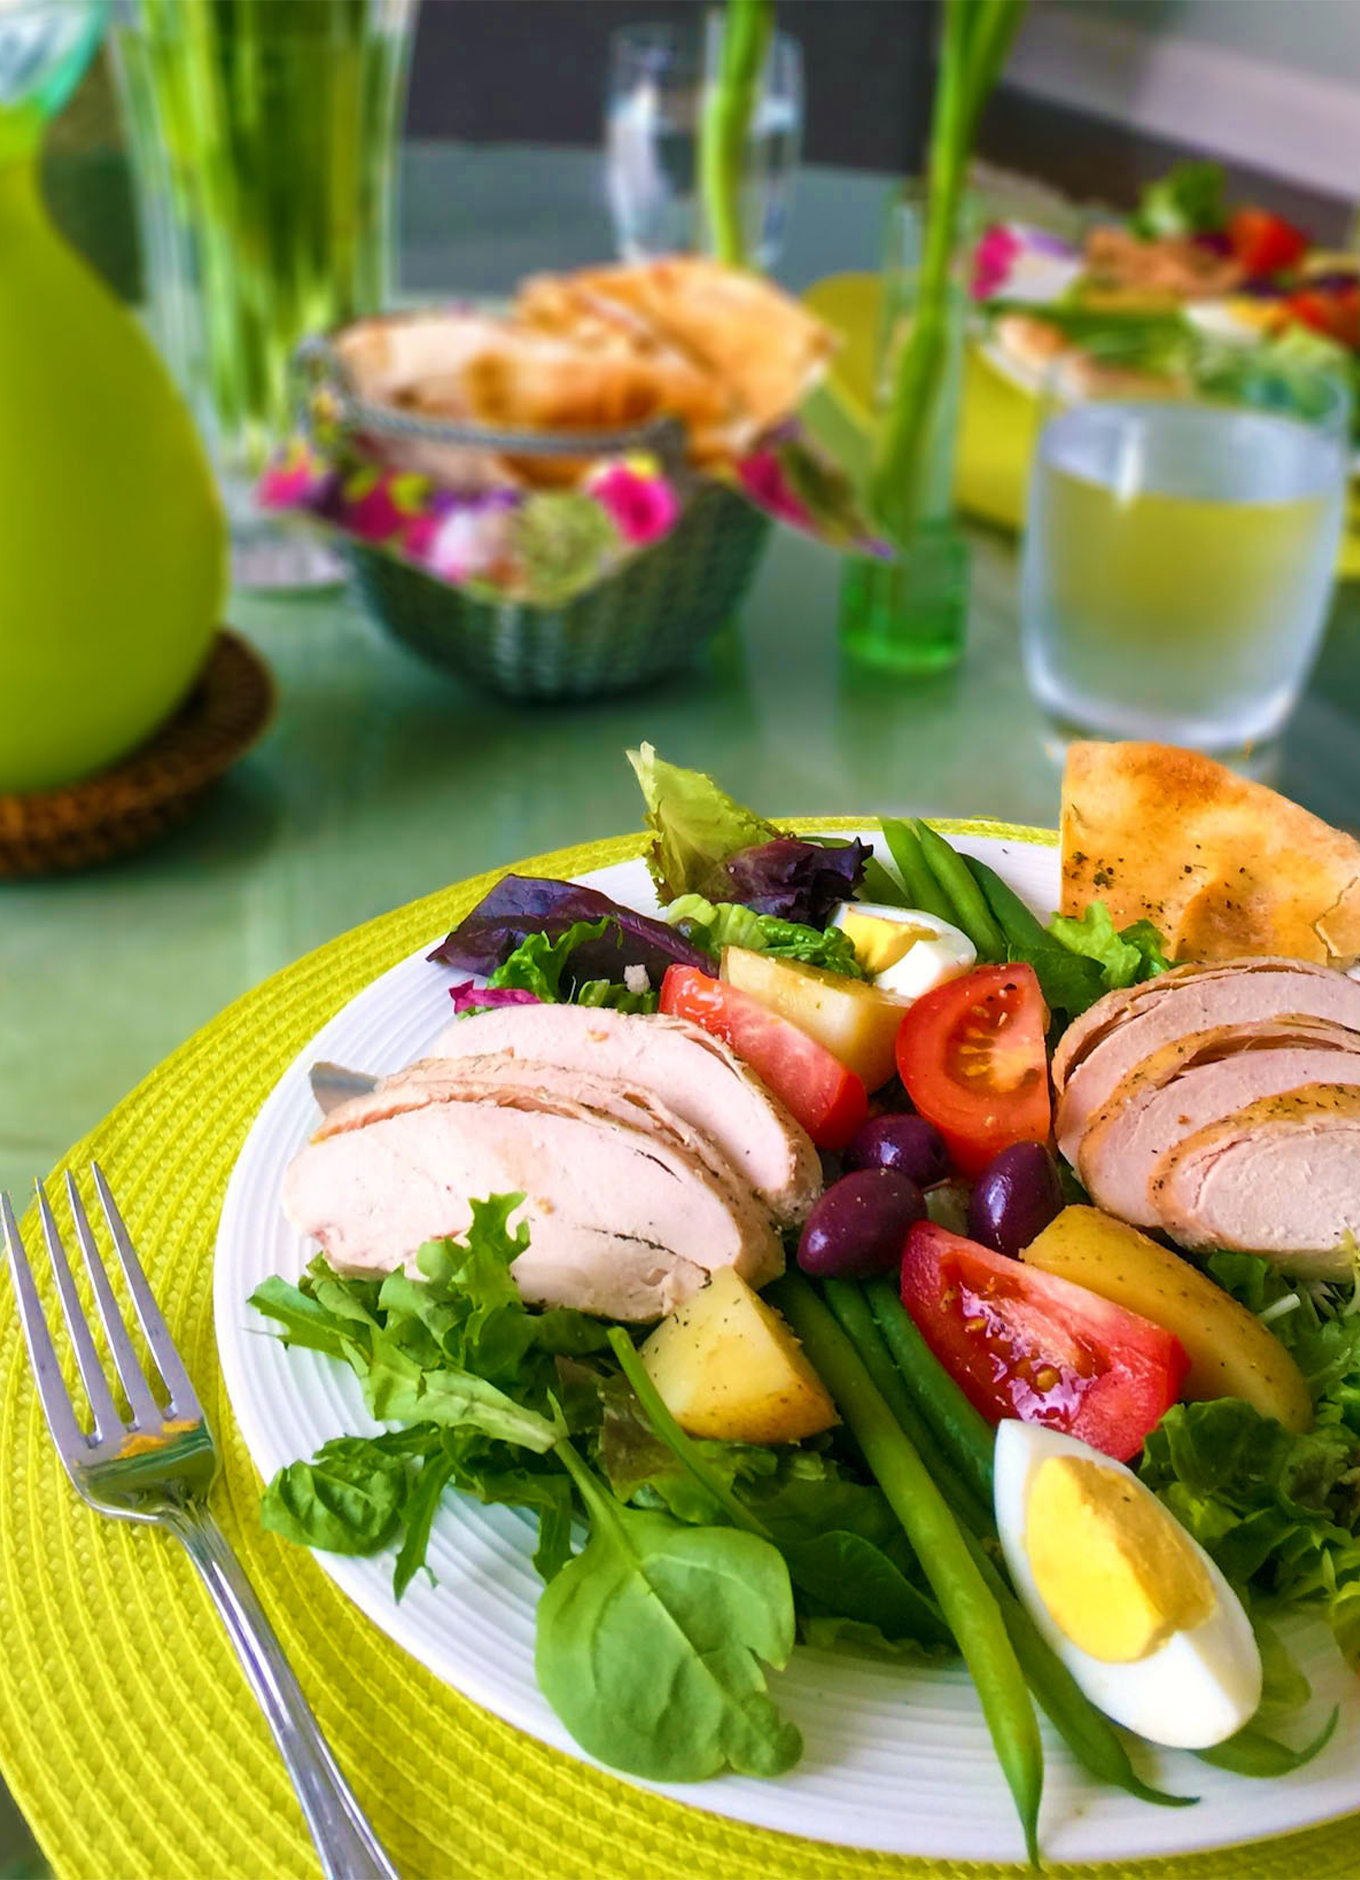 A Nicoise salad made with Zabiha Halal Chicken Breasts and fresh vegetables, on a colourful table.